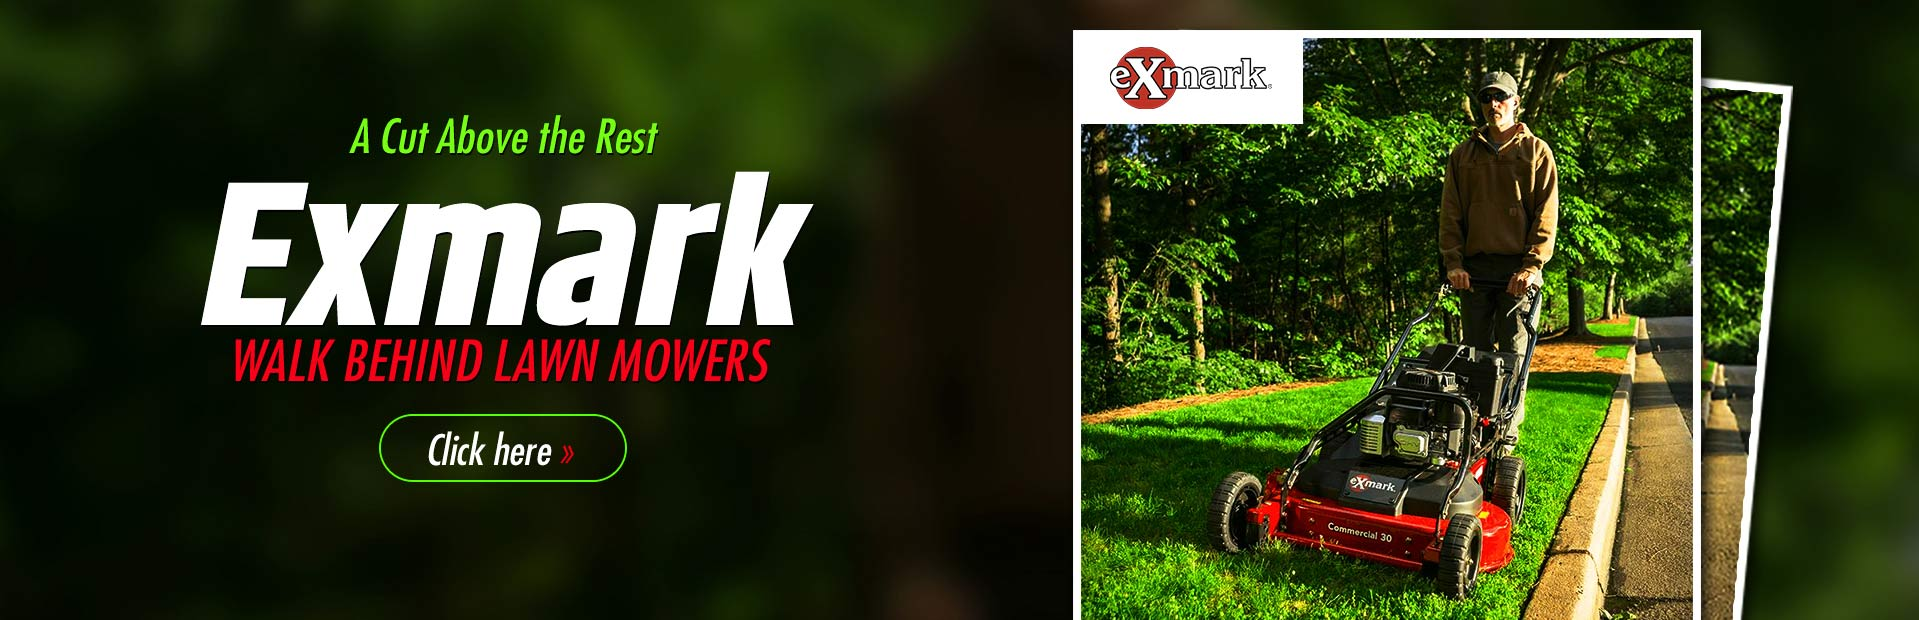 Click here to view our selection of Exmark walk behind lawn mowers!